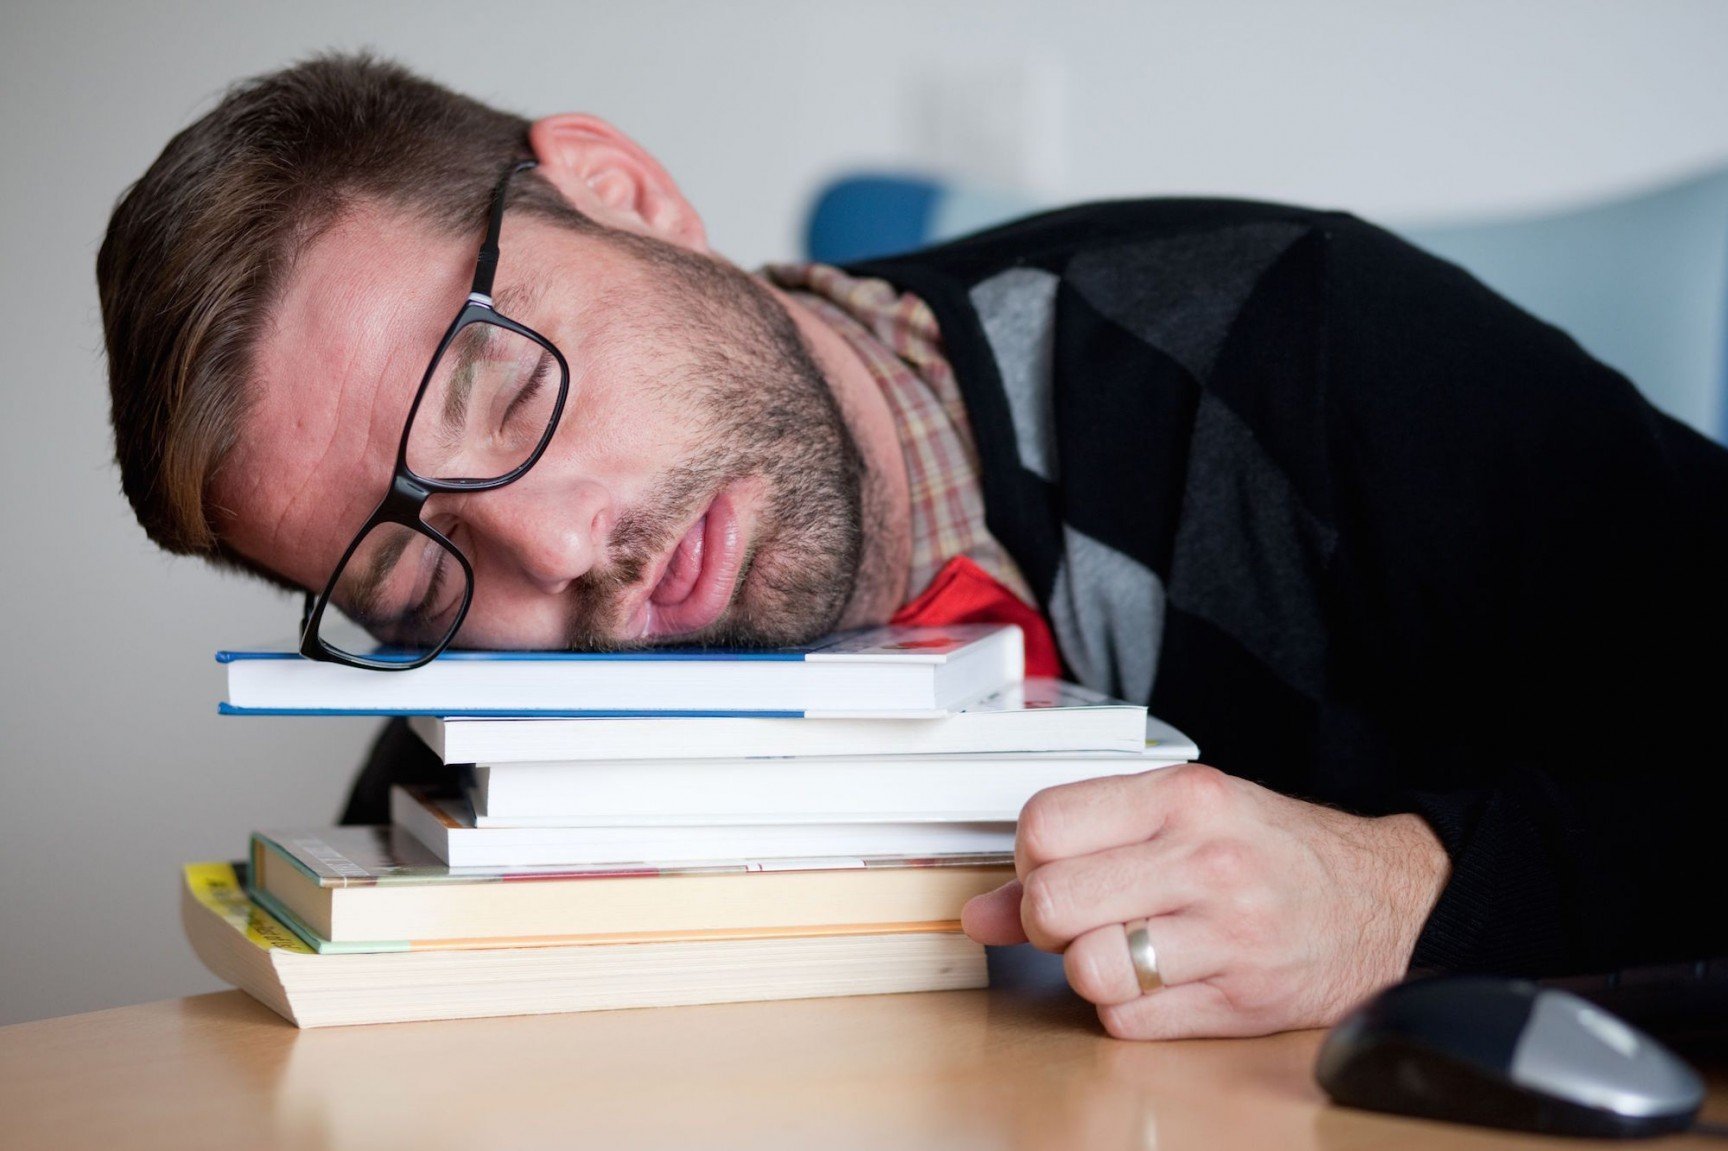 the effects of internet on sleep Comm tech posted by yrndj monday, february 8, 2016 at 8:59am 1)what did strict study generally find about the effect of internet use on sleep writeacher monday, february 8, 2016 at 9:35am.